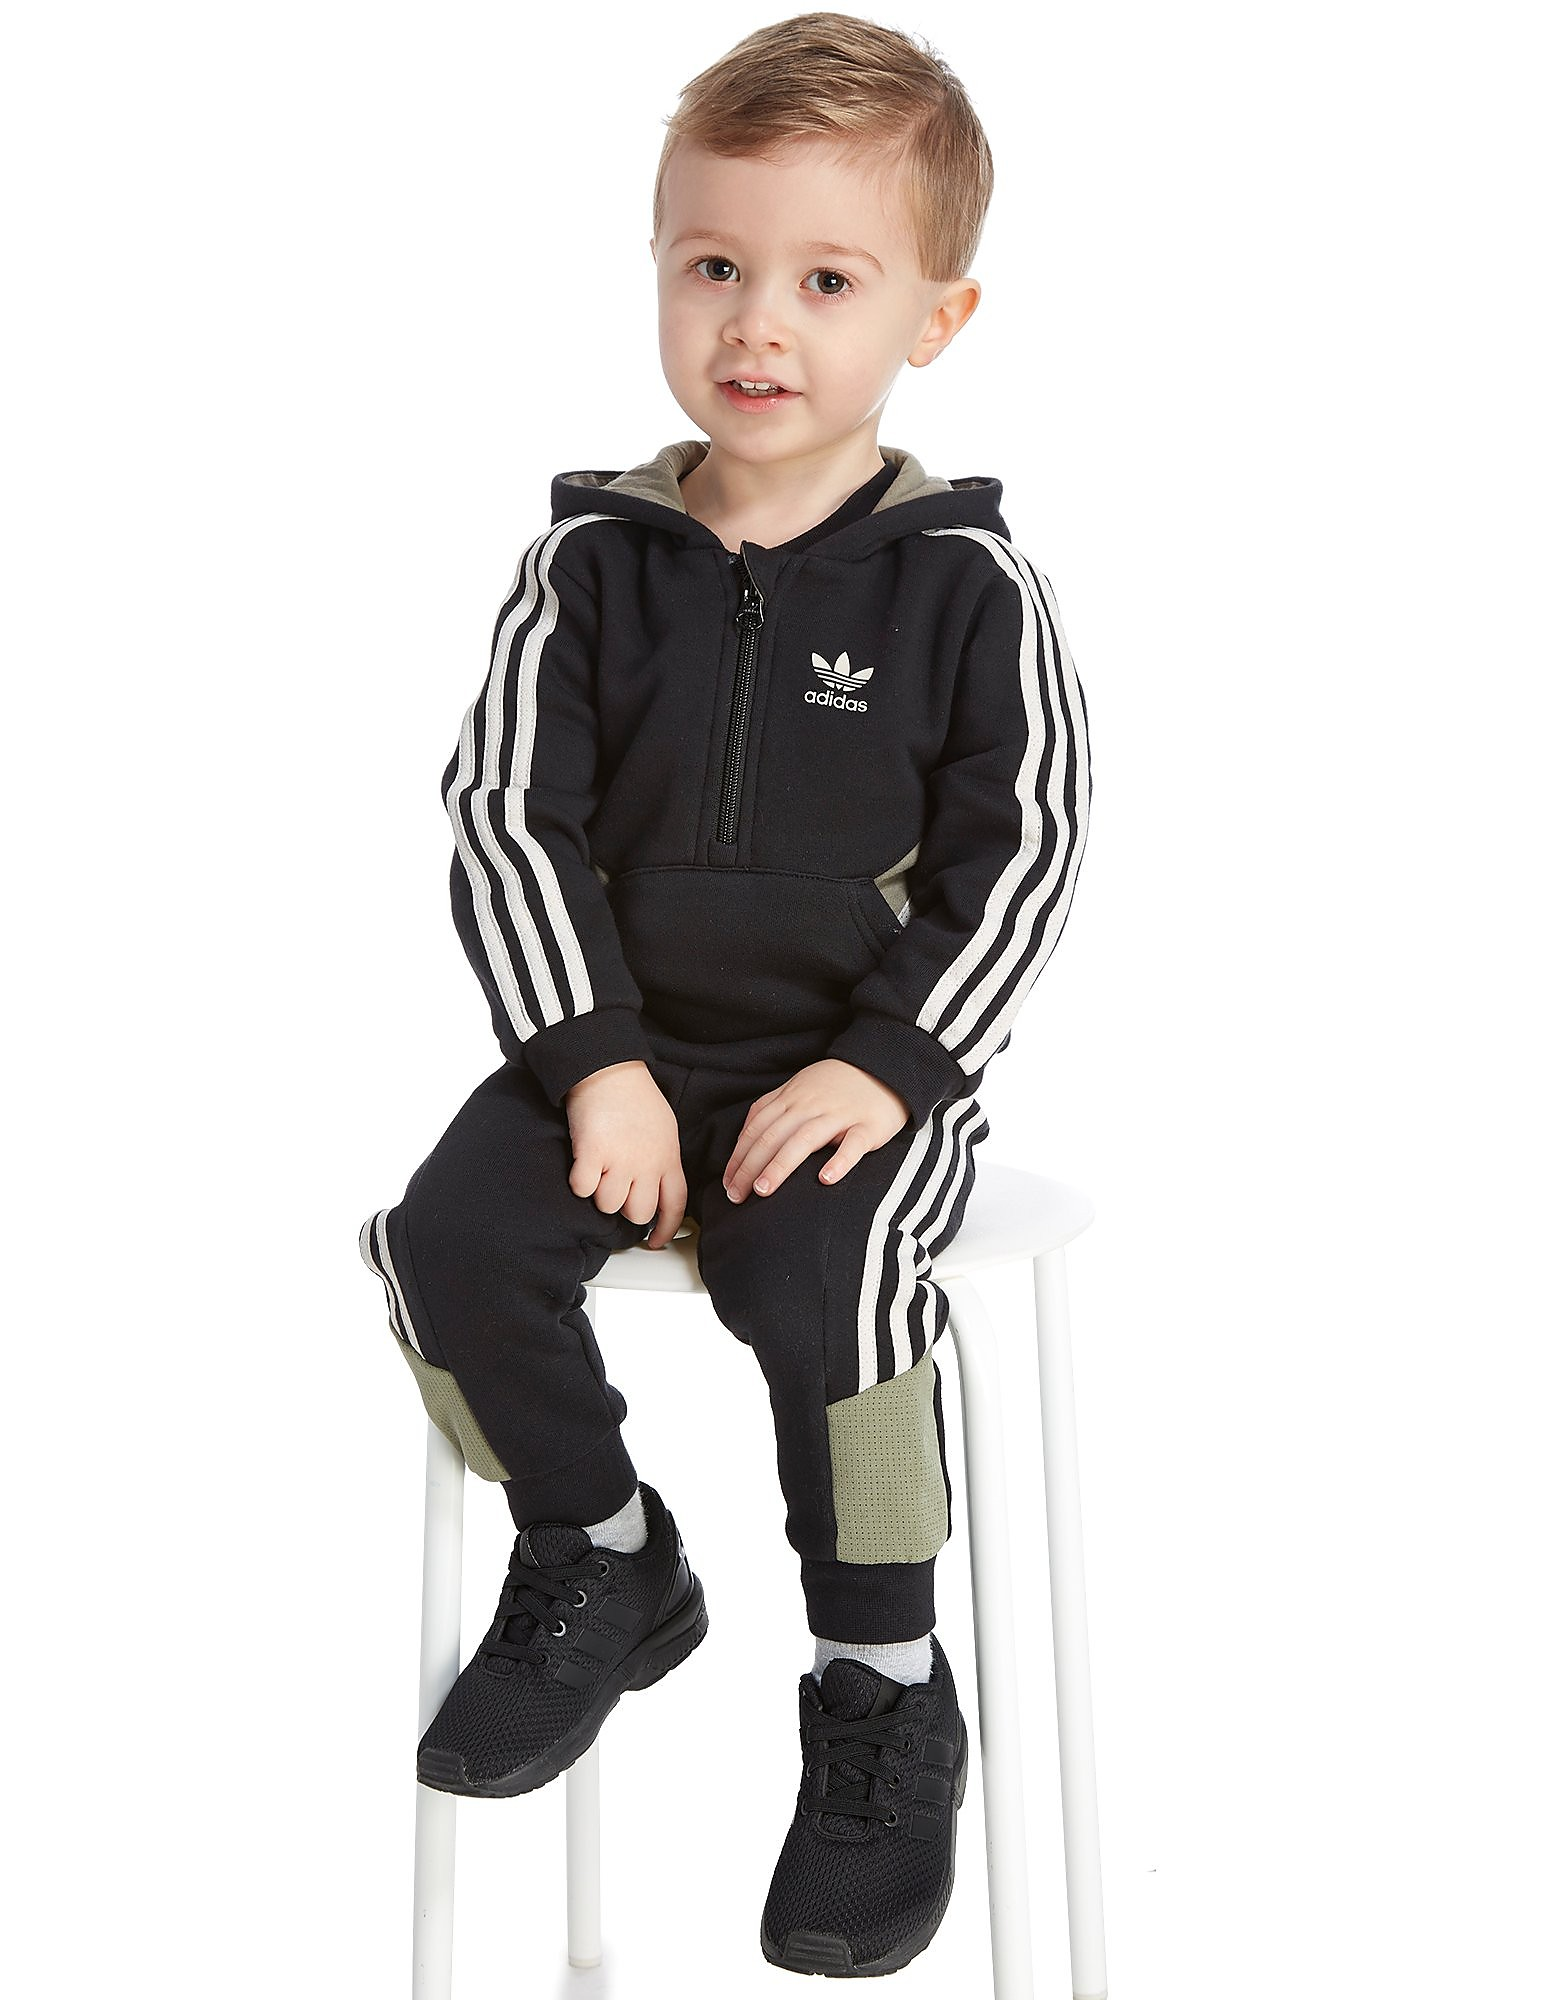 adidas Originals Europe 1/4 Zip Survêtement Bébé